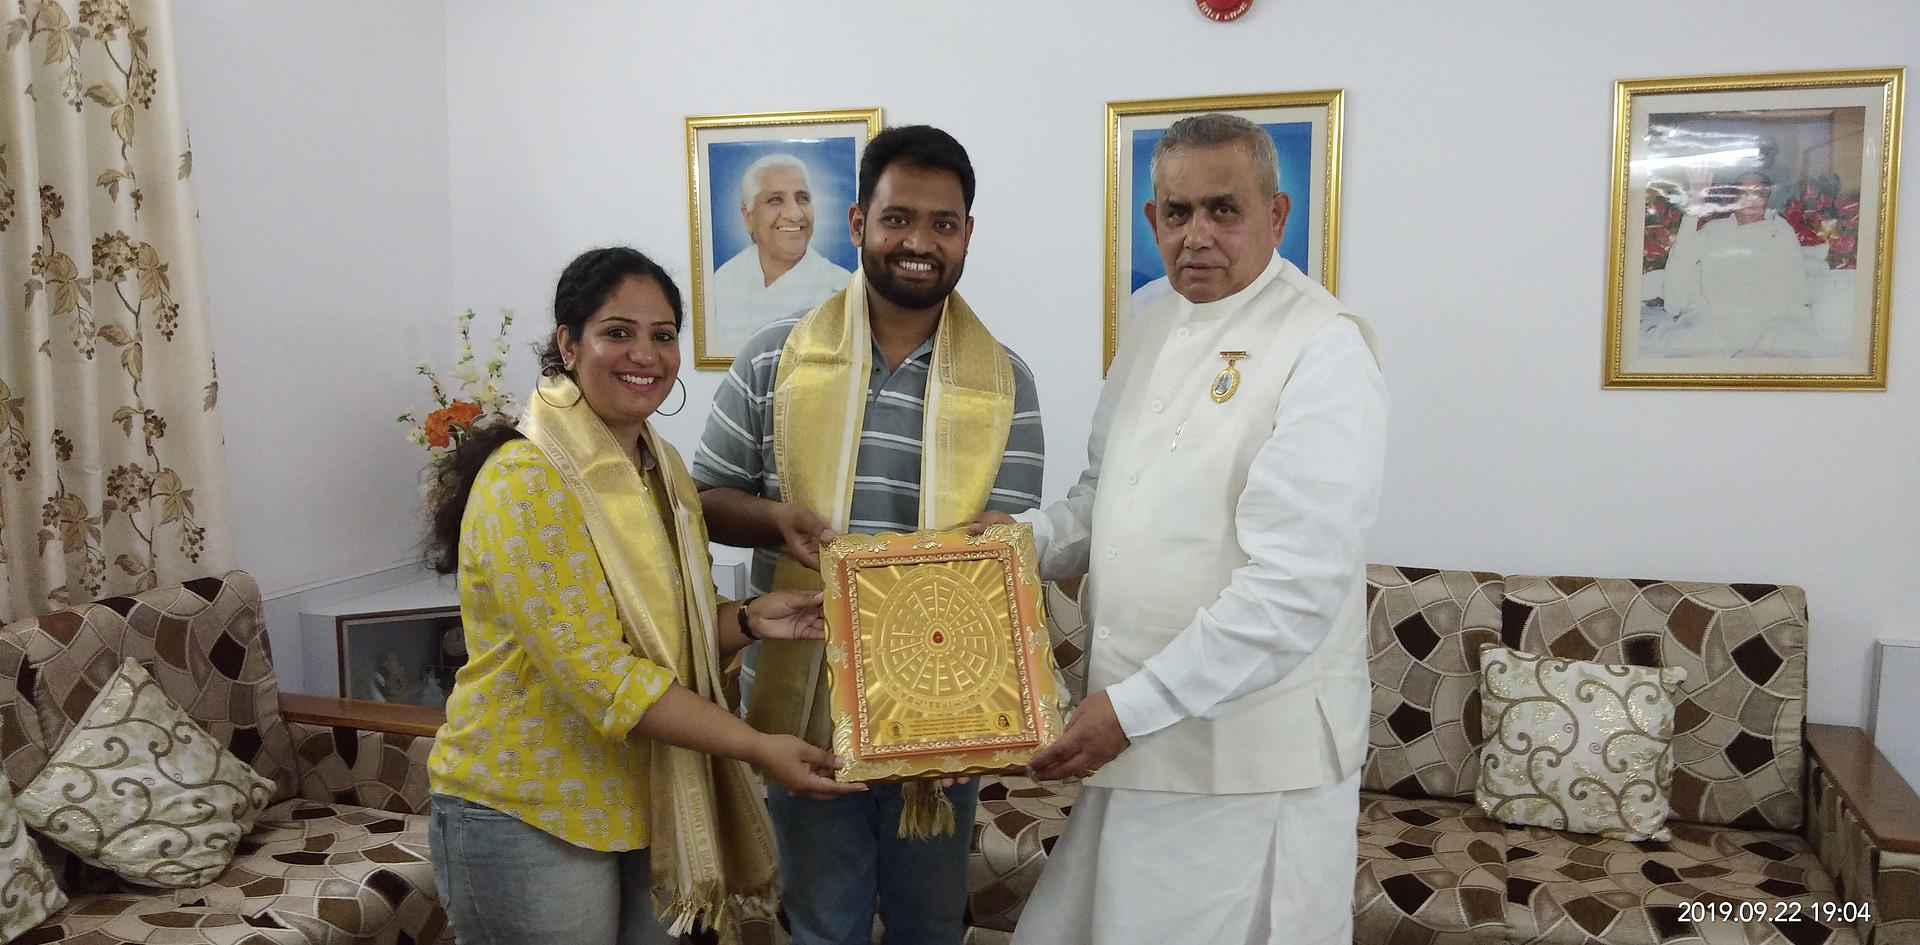 Rajayogi B.K. Mruthyunjaya Executive Secretary, and Vice-Chairperson - Education Wing, Brahma Kumaris World Headquarters Mount Abu honoring Mr. Dakh Gaur , Founder, Blub world and Mrs. Aditi Gaur, Editor, Blub World during the 3-day National Media Conference on 'Spirituality for Establishing Peace & Harmony – The Role of Media' held from September 20-24, 2019 at Brahma Kumaris World Headquarters, Mount Abu